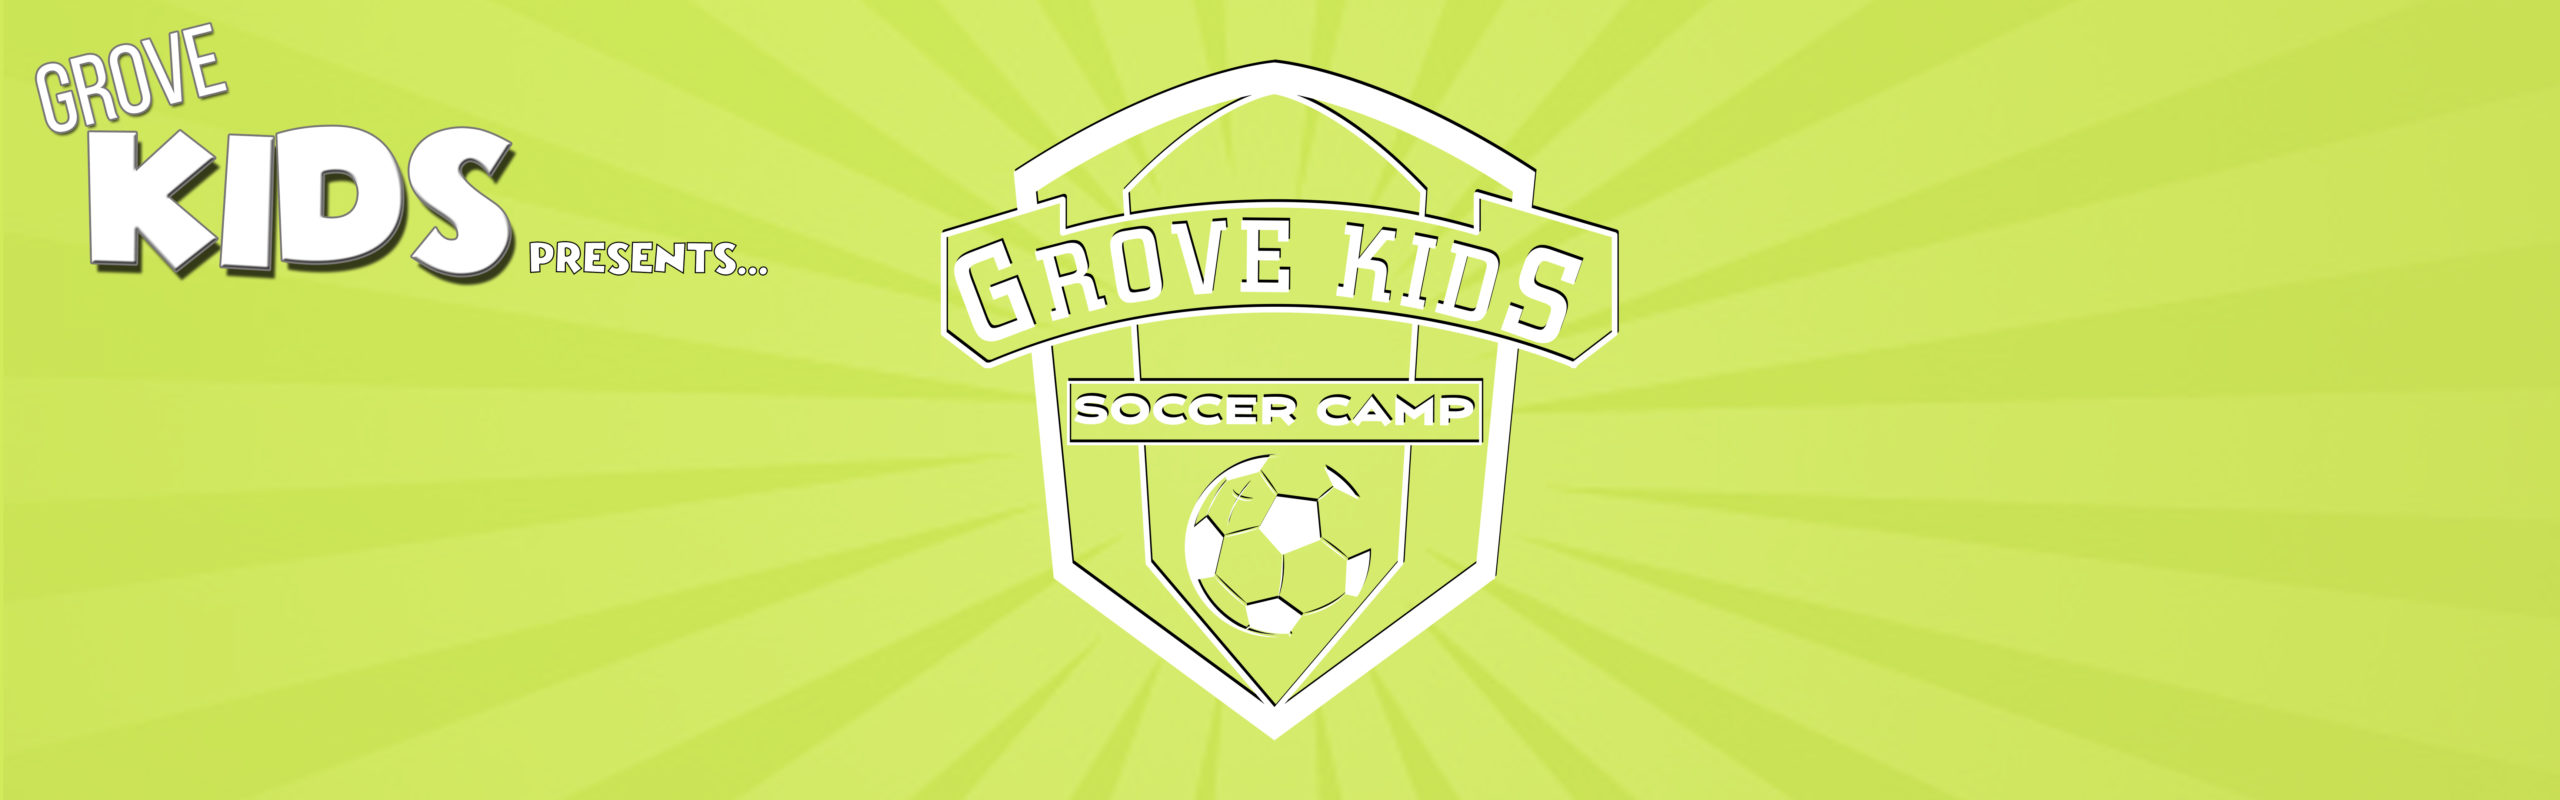 Grove Kids Fun Feet Soccer Camp